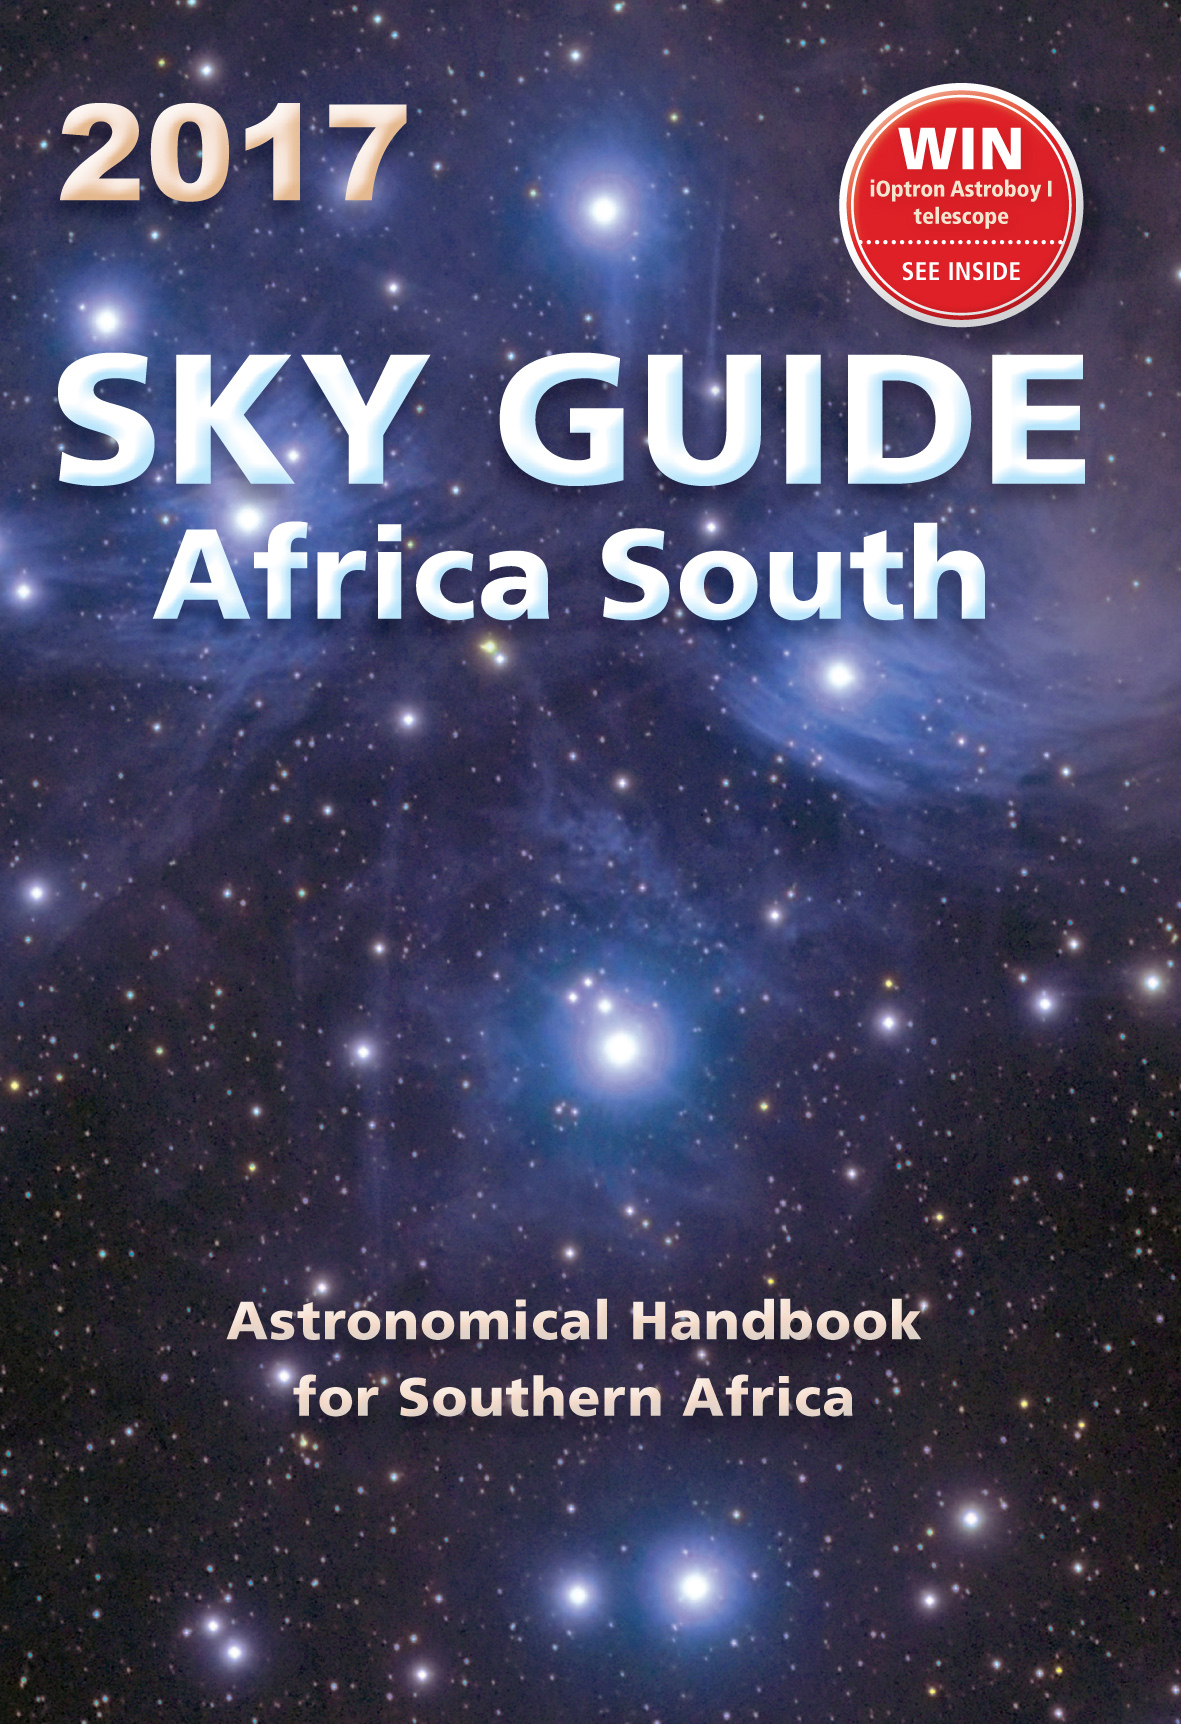 SKY GUIDE AFRICA SOUTH 2017  ASTRONOMICAL HANDBOOK FOR SOUTHERN AFRICA